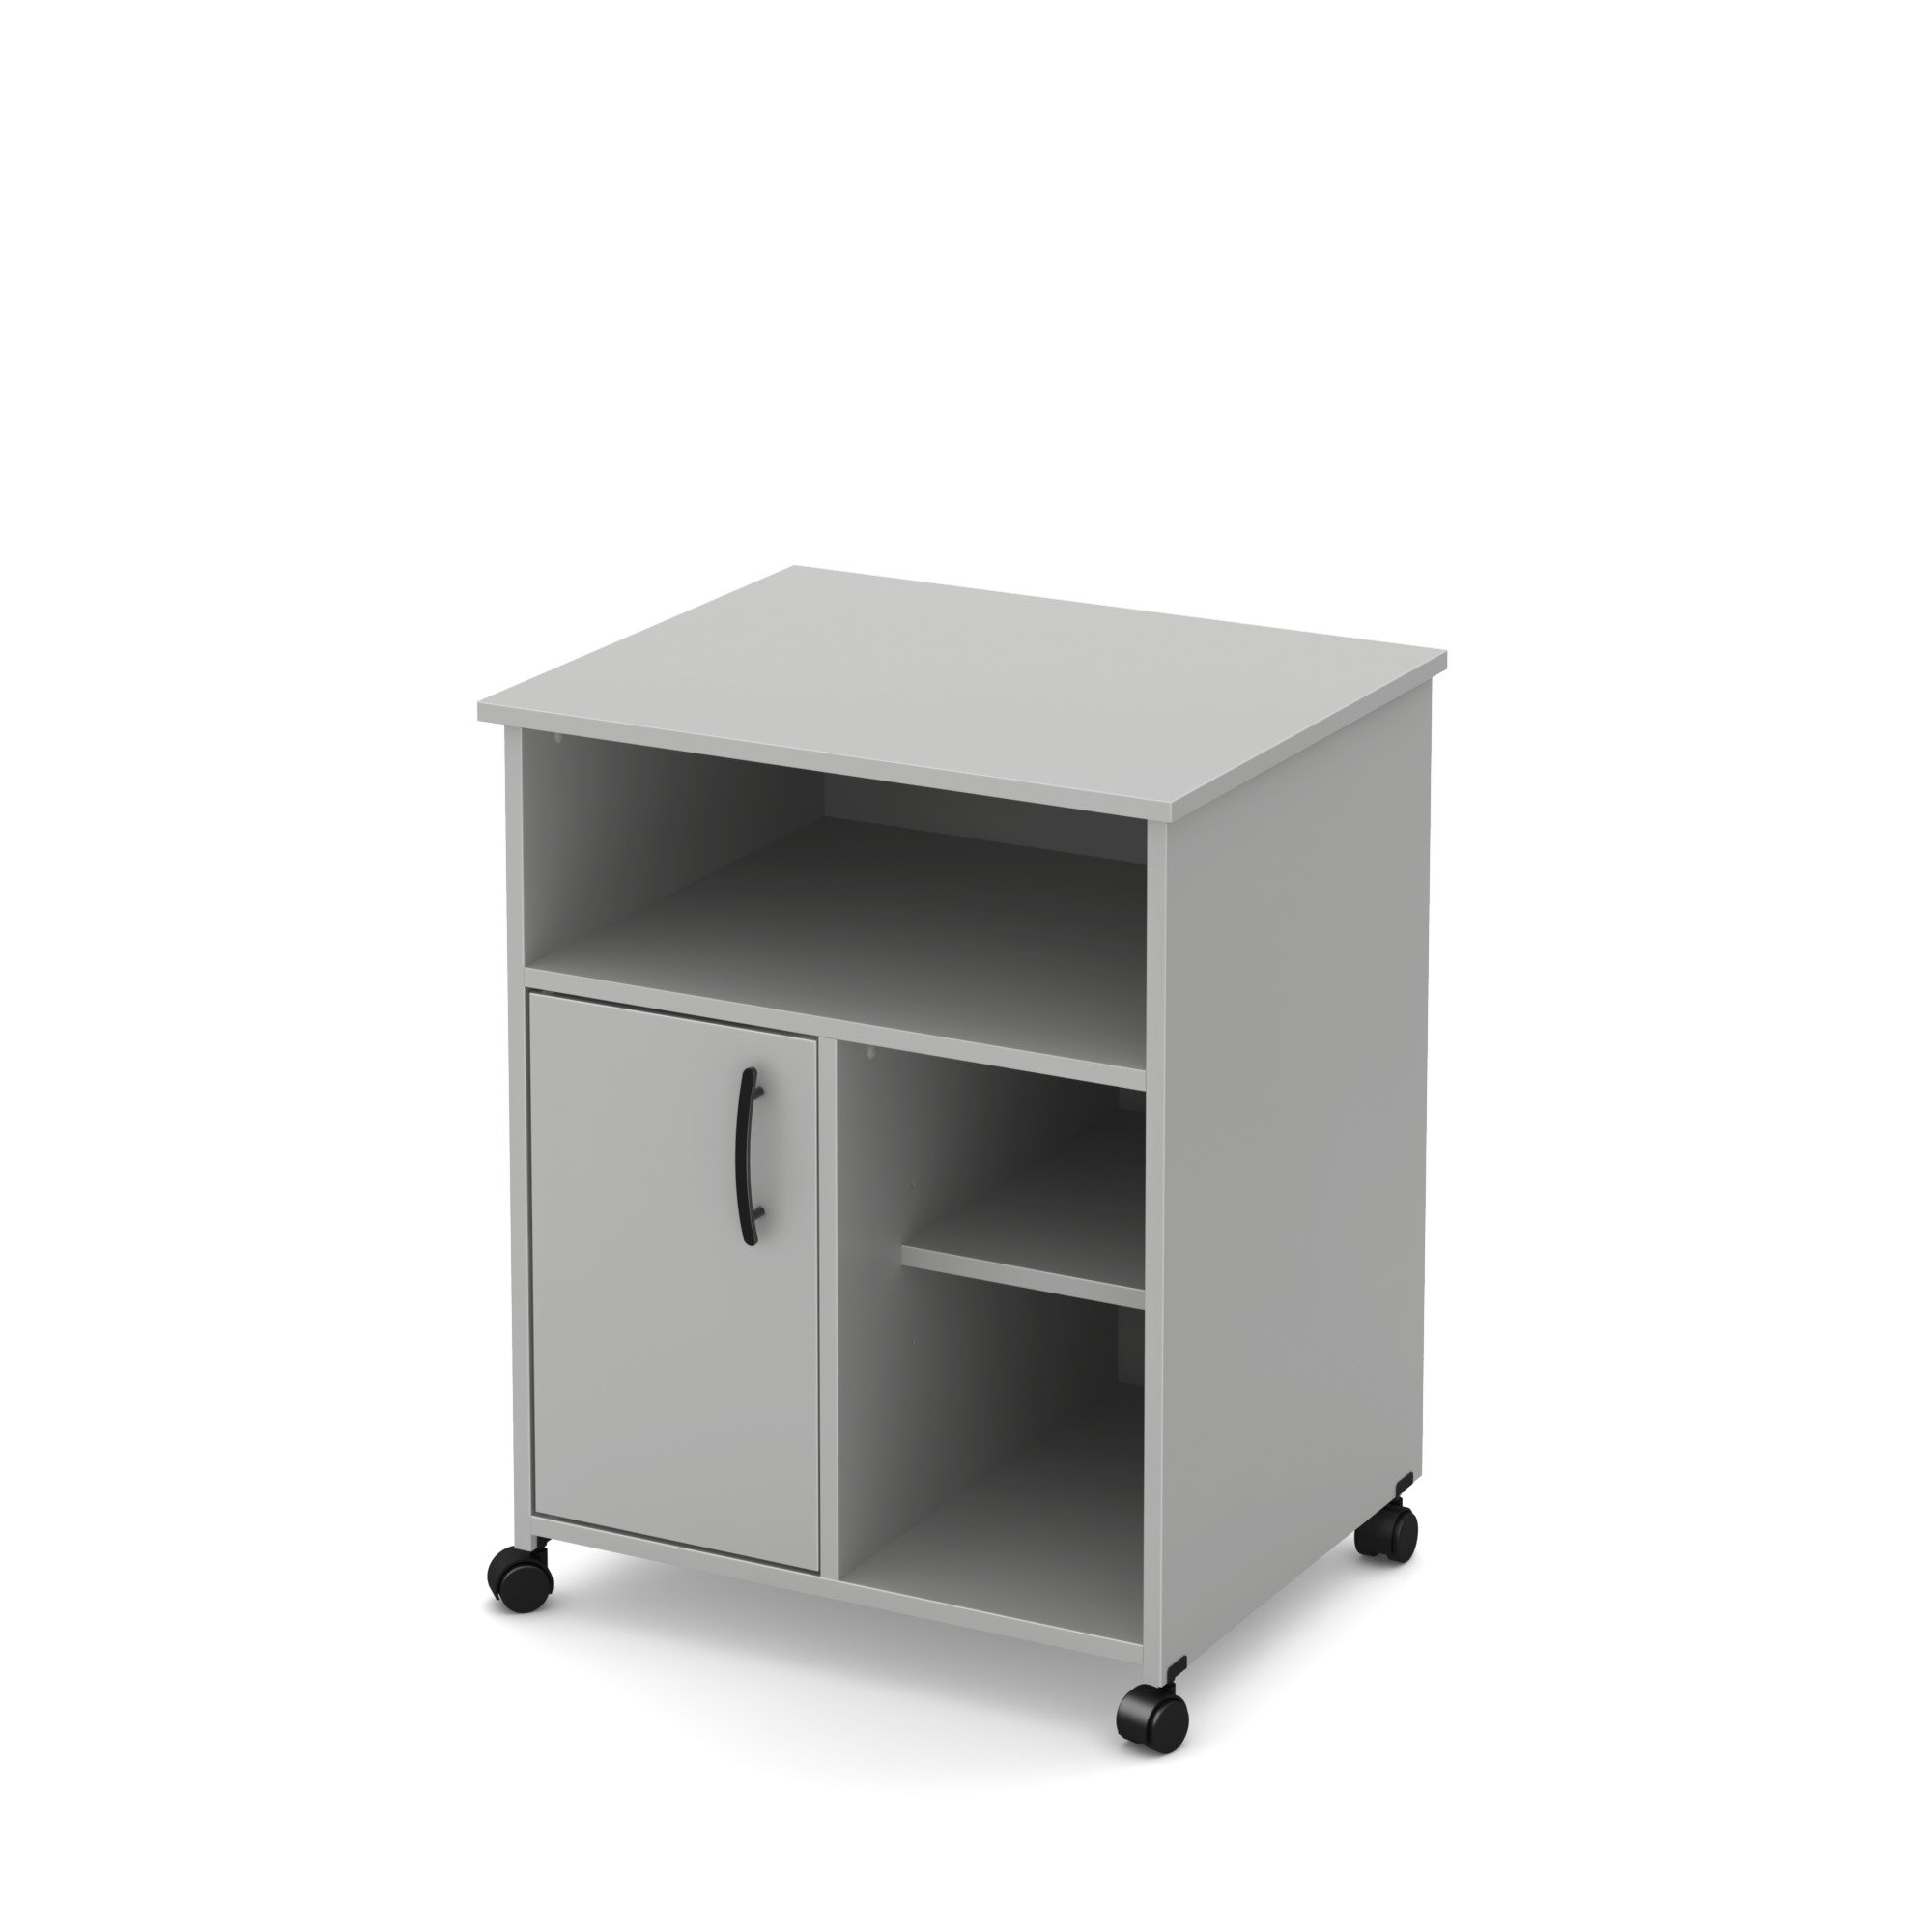 South Shore Axess Microwave Cart with Storage on Wheels, Soft Gray